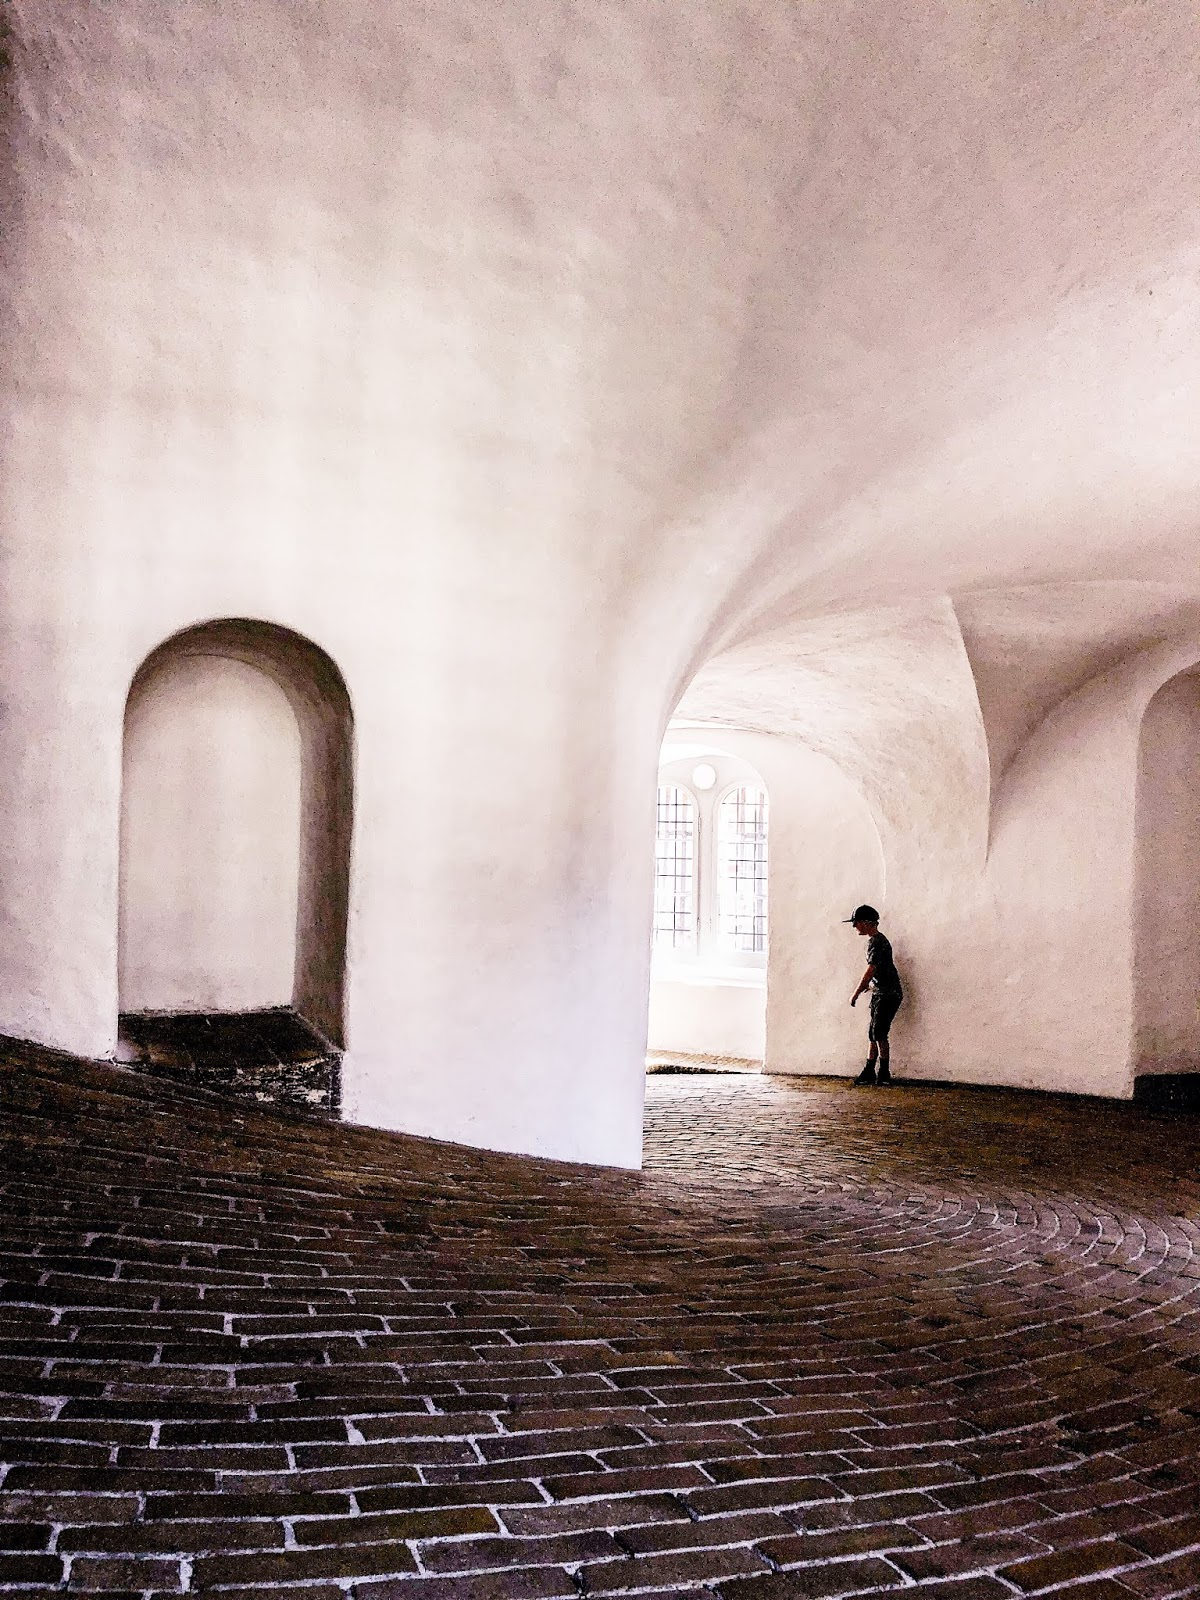 sloped brick floor with white washed walls interior of Copenhagen's round tower